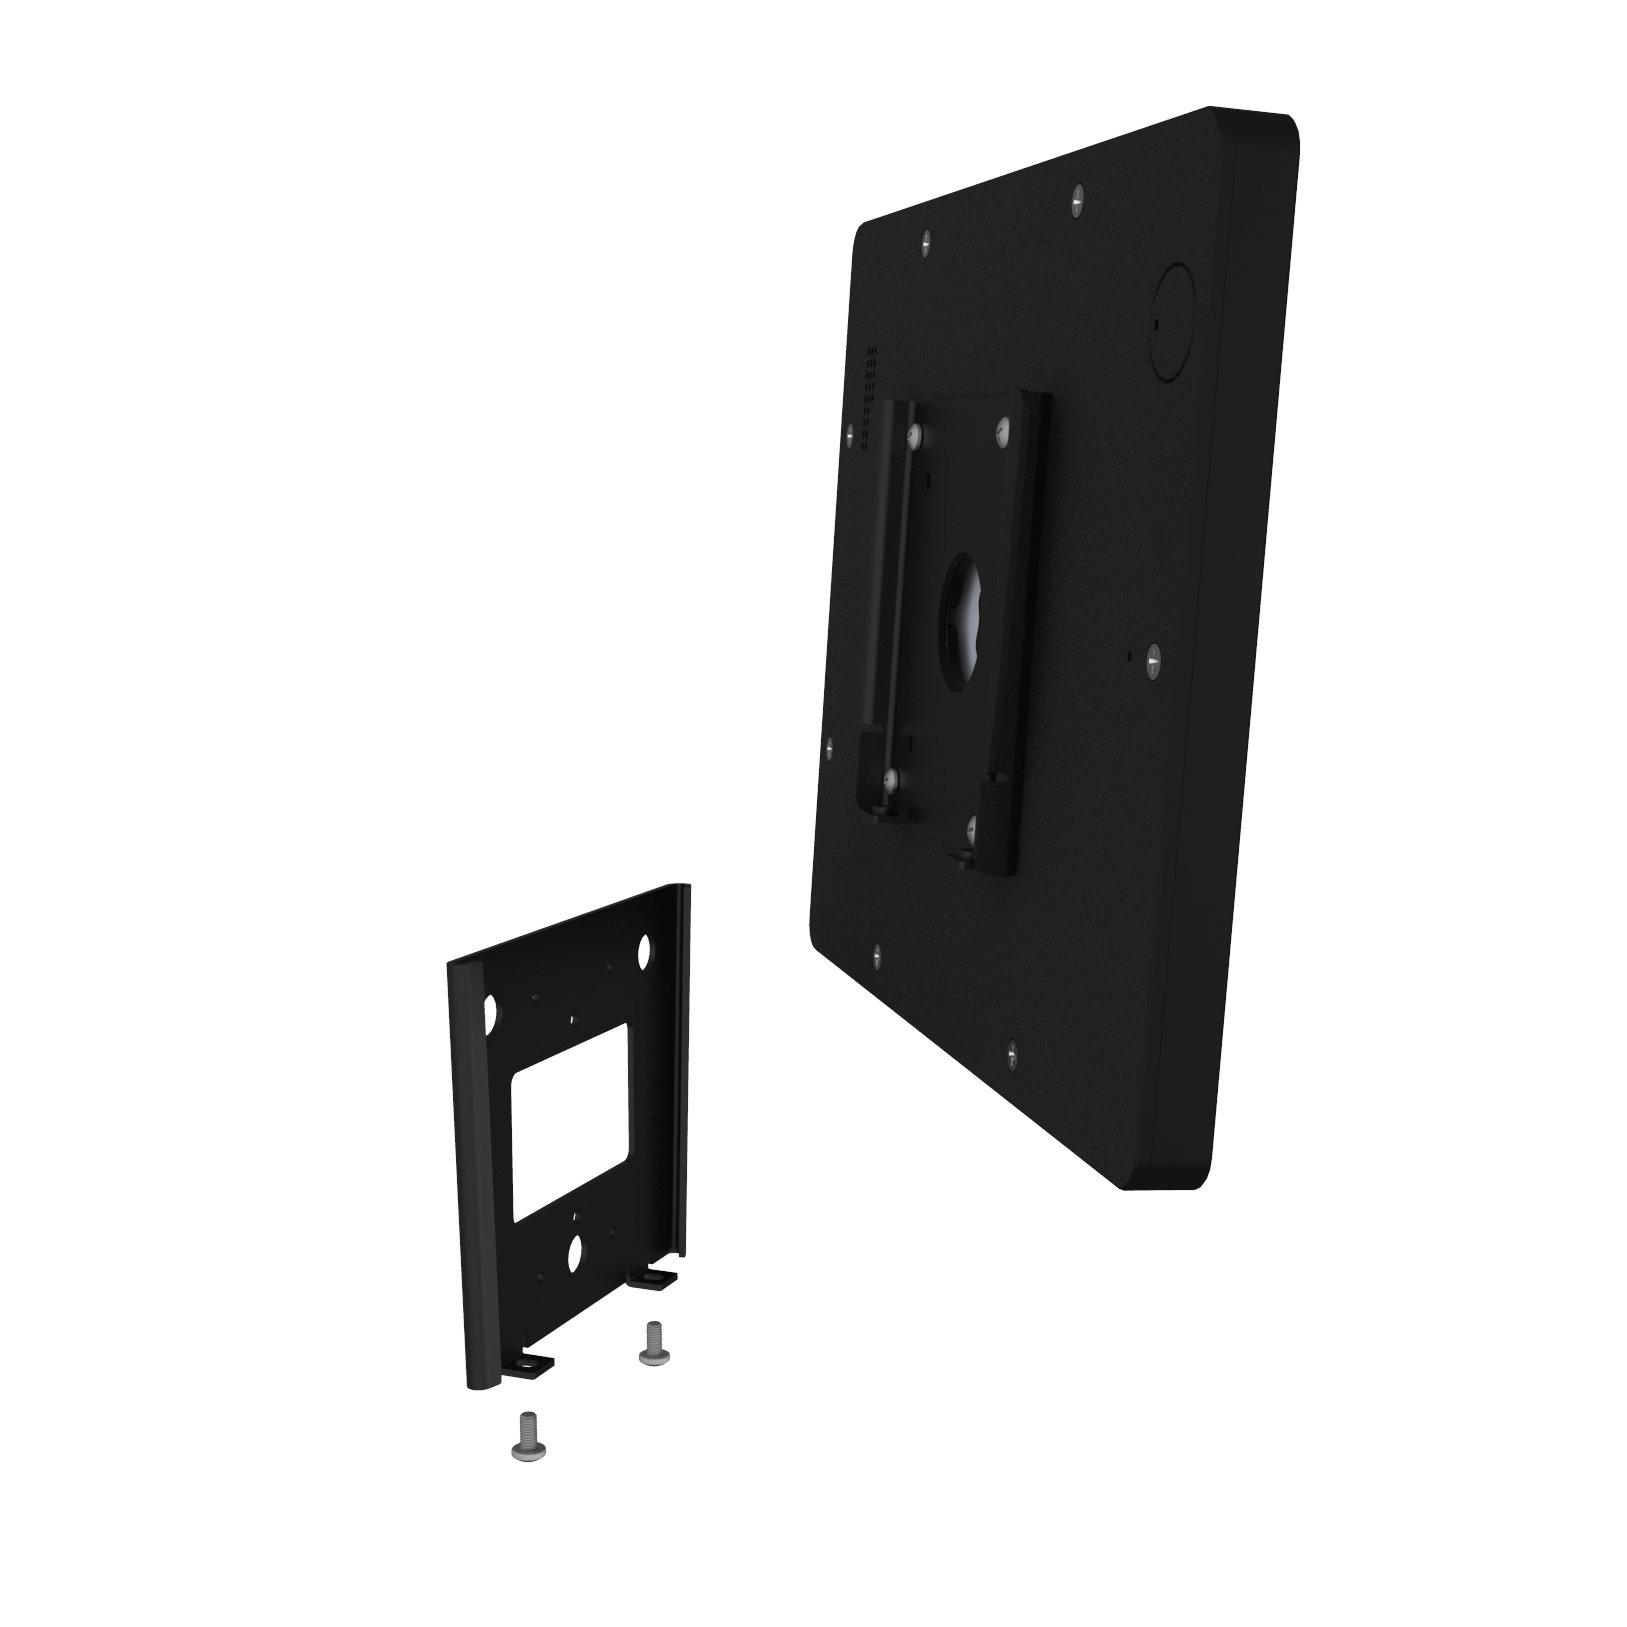 VidaMount iPad 2/3/4 Black Home Button Covered Fixed Permanent Glass Mount [Bundle] by VidaMount (Image #5)